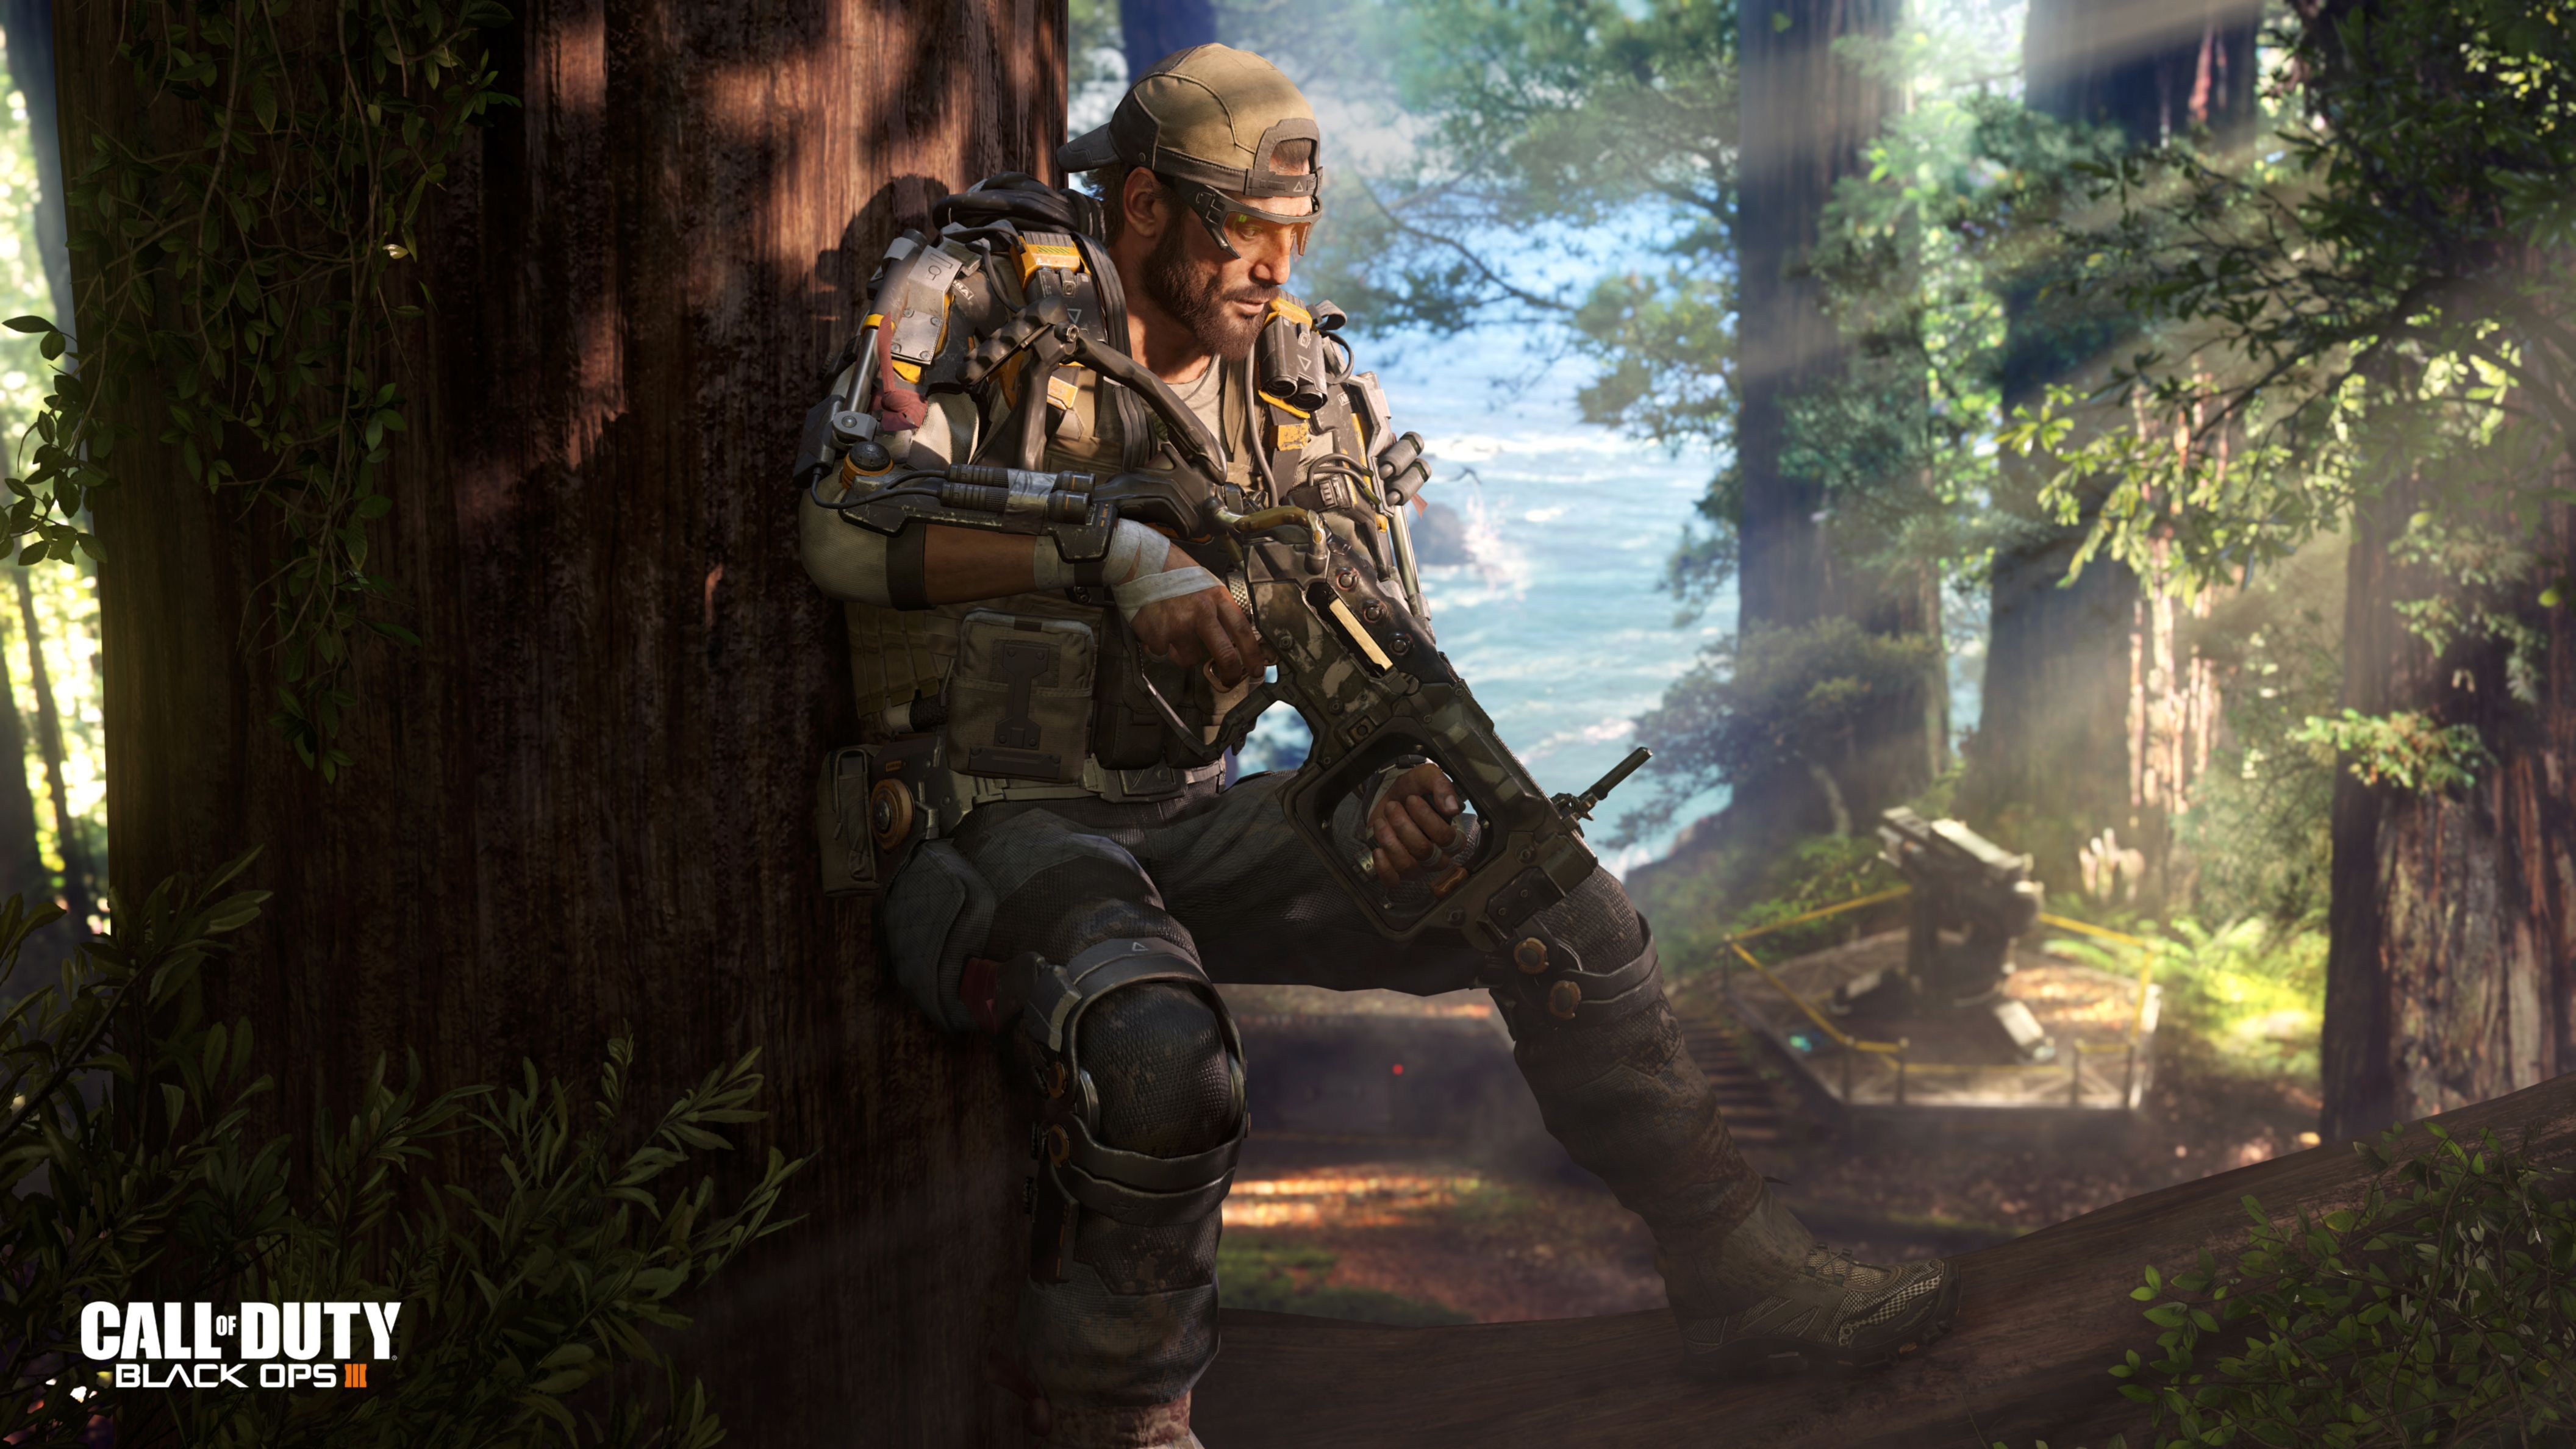 Download free HD Call of Duty Black Ops 3 Specialist Nomad HD Wallpaper, image